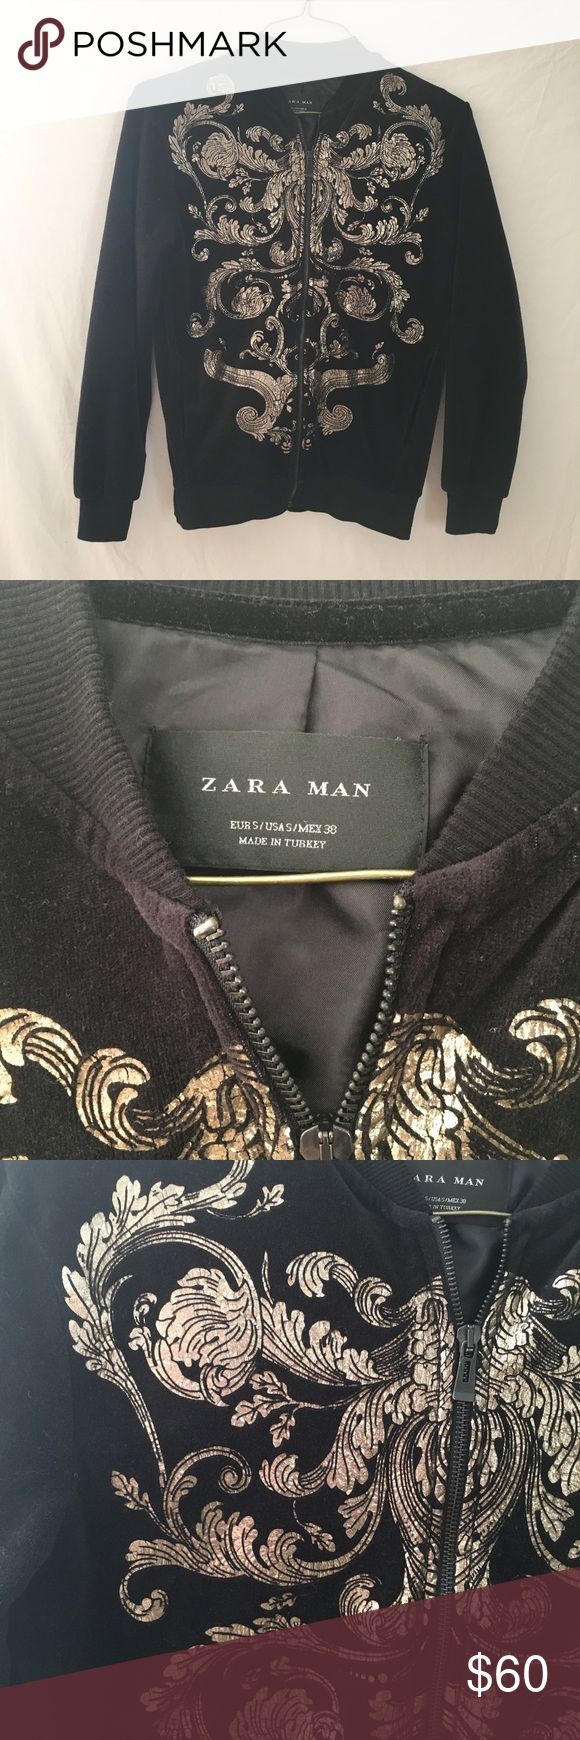 Zara Man Velvet Gold Printed Jacket Sz Small Pre owned Zara Man jacket. Size small, 80% Cotton 20% Polyester. See pictures for details and measurements. Some of the gold detailing shows wear (little bit of cracking). Zara Jackets & Coats